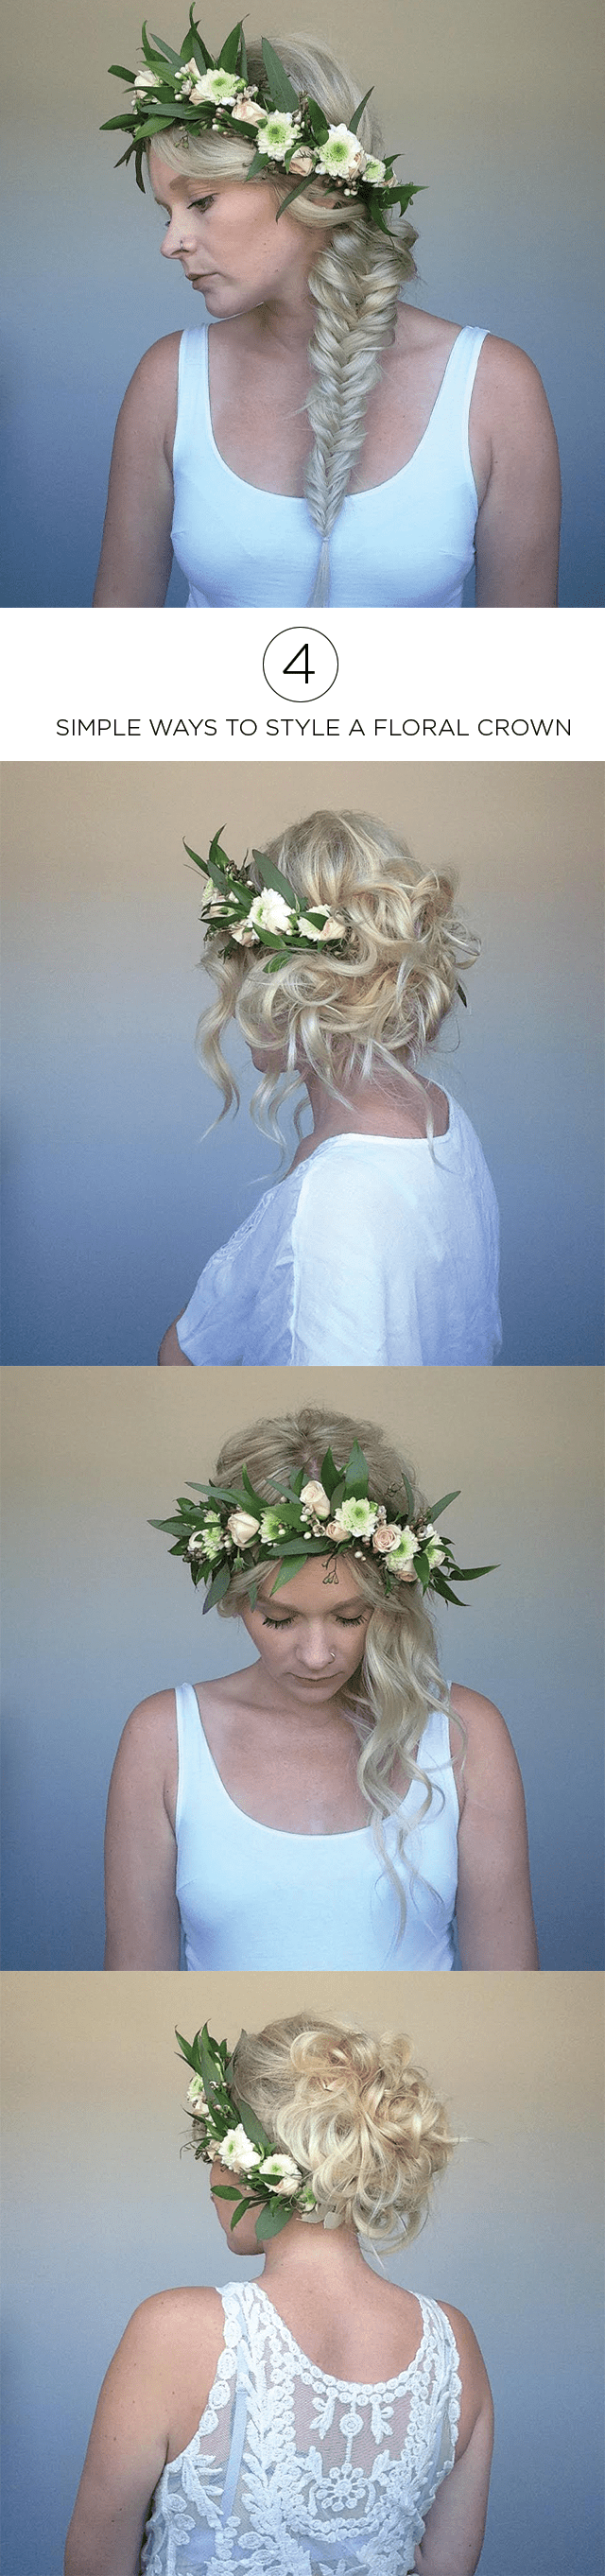 Four ways to style a floral crown easy and simple